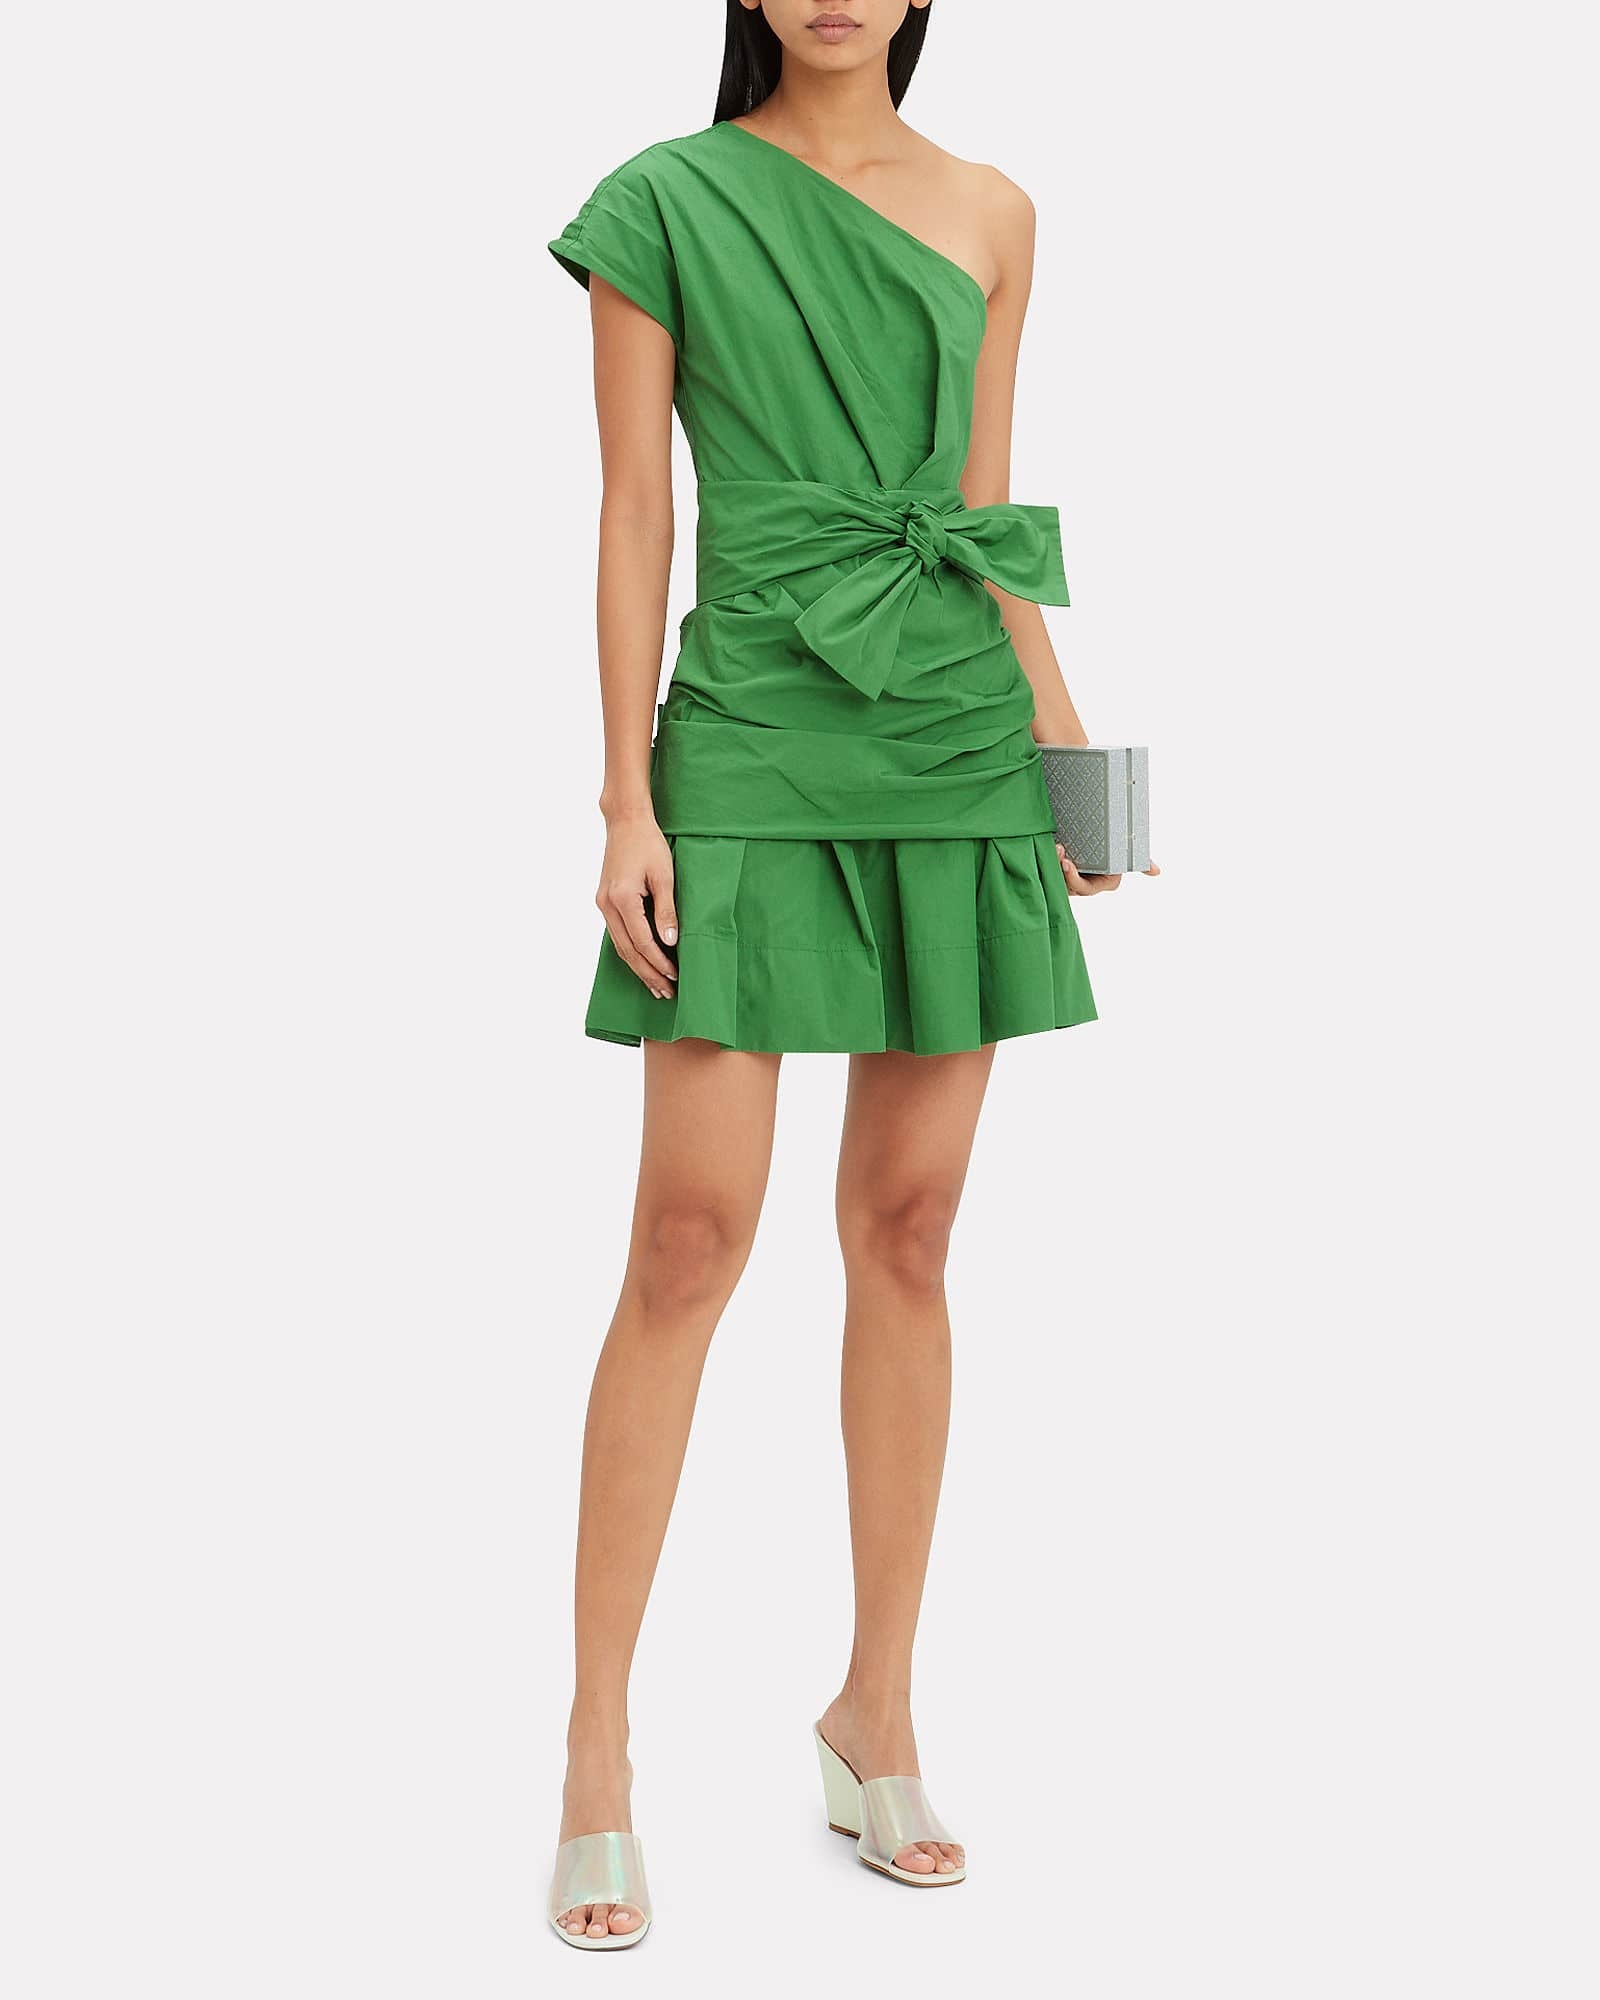 Beat the Heat in these Summer Essentials, cotton dress, Derek Lam 10 Crosby green one shoulder cotton dress